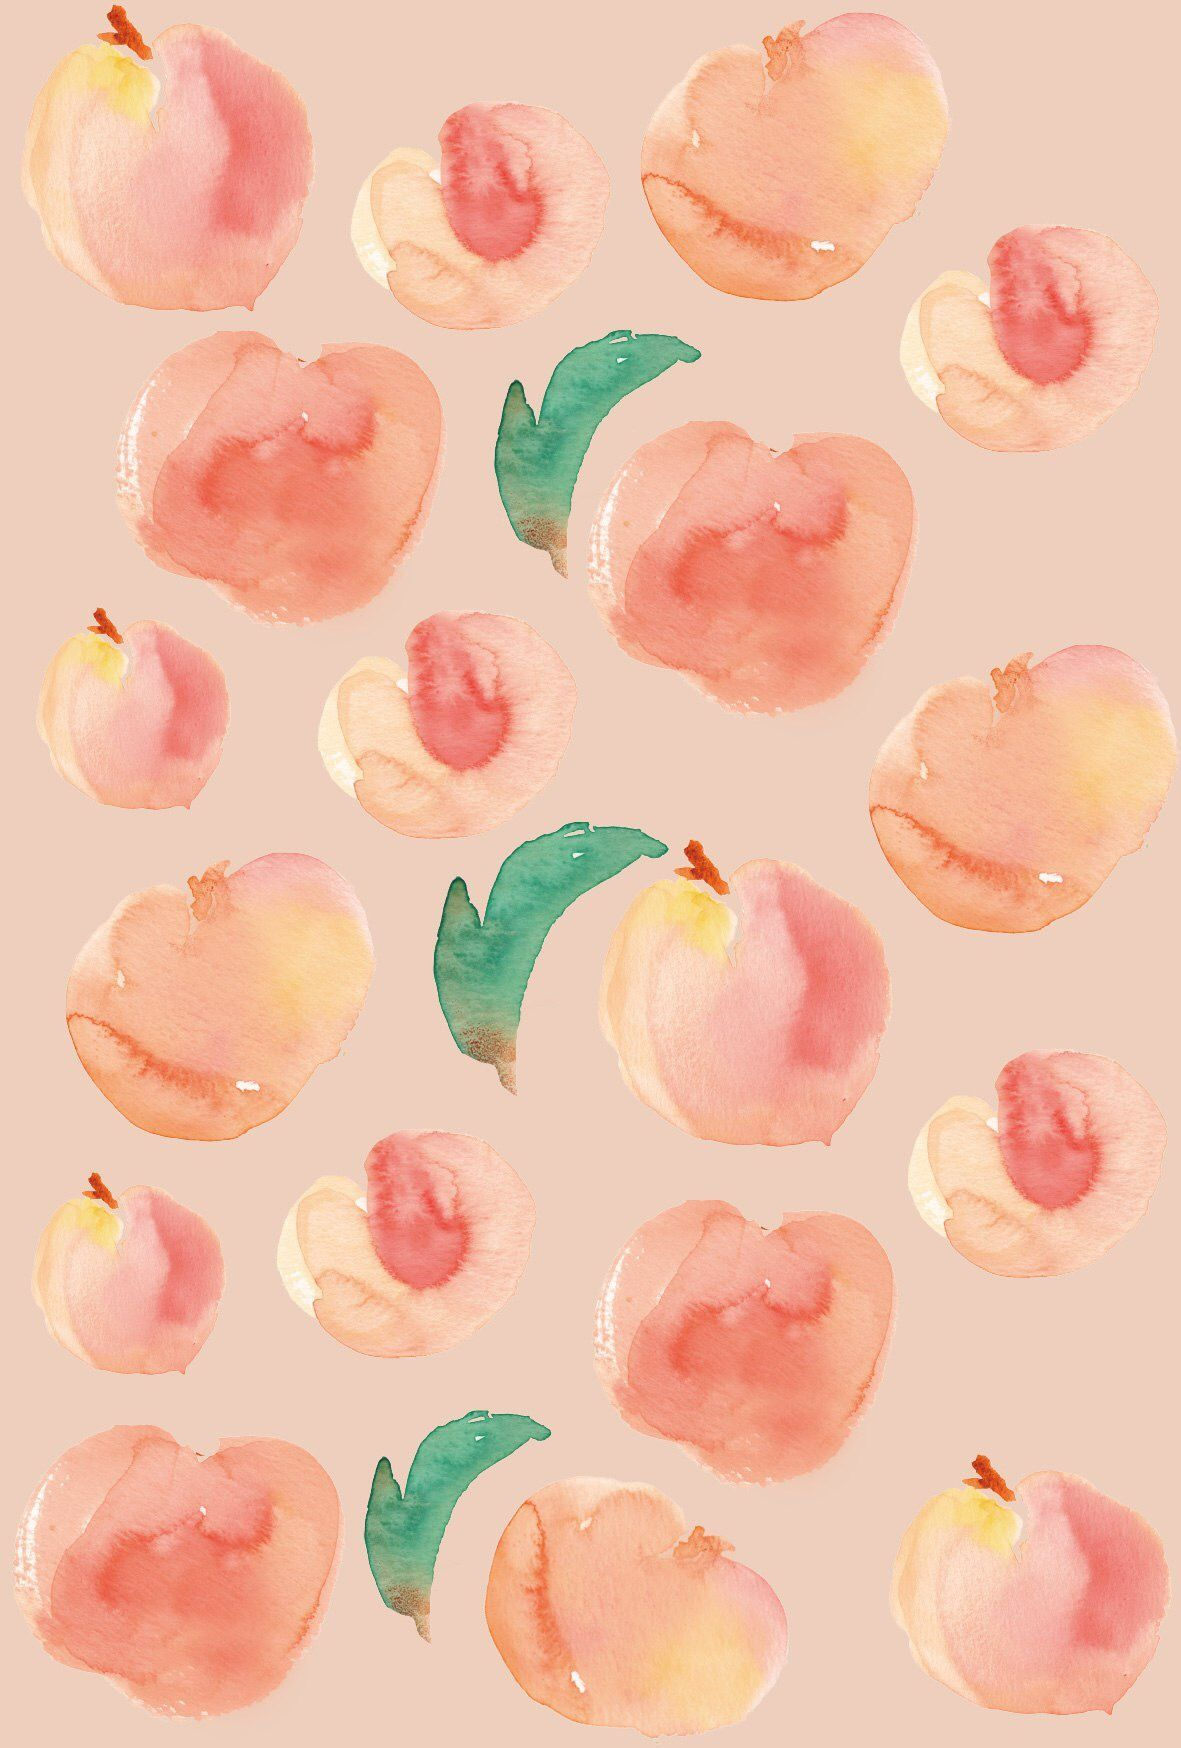 Peach Aesthetic Wallpapers   Top Peach Aesthetic Backgrounds 1181x1748